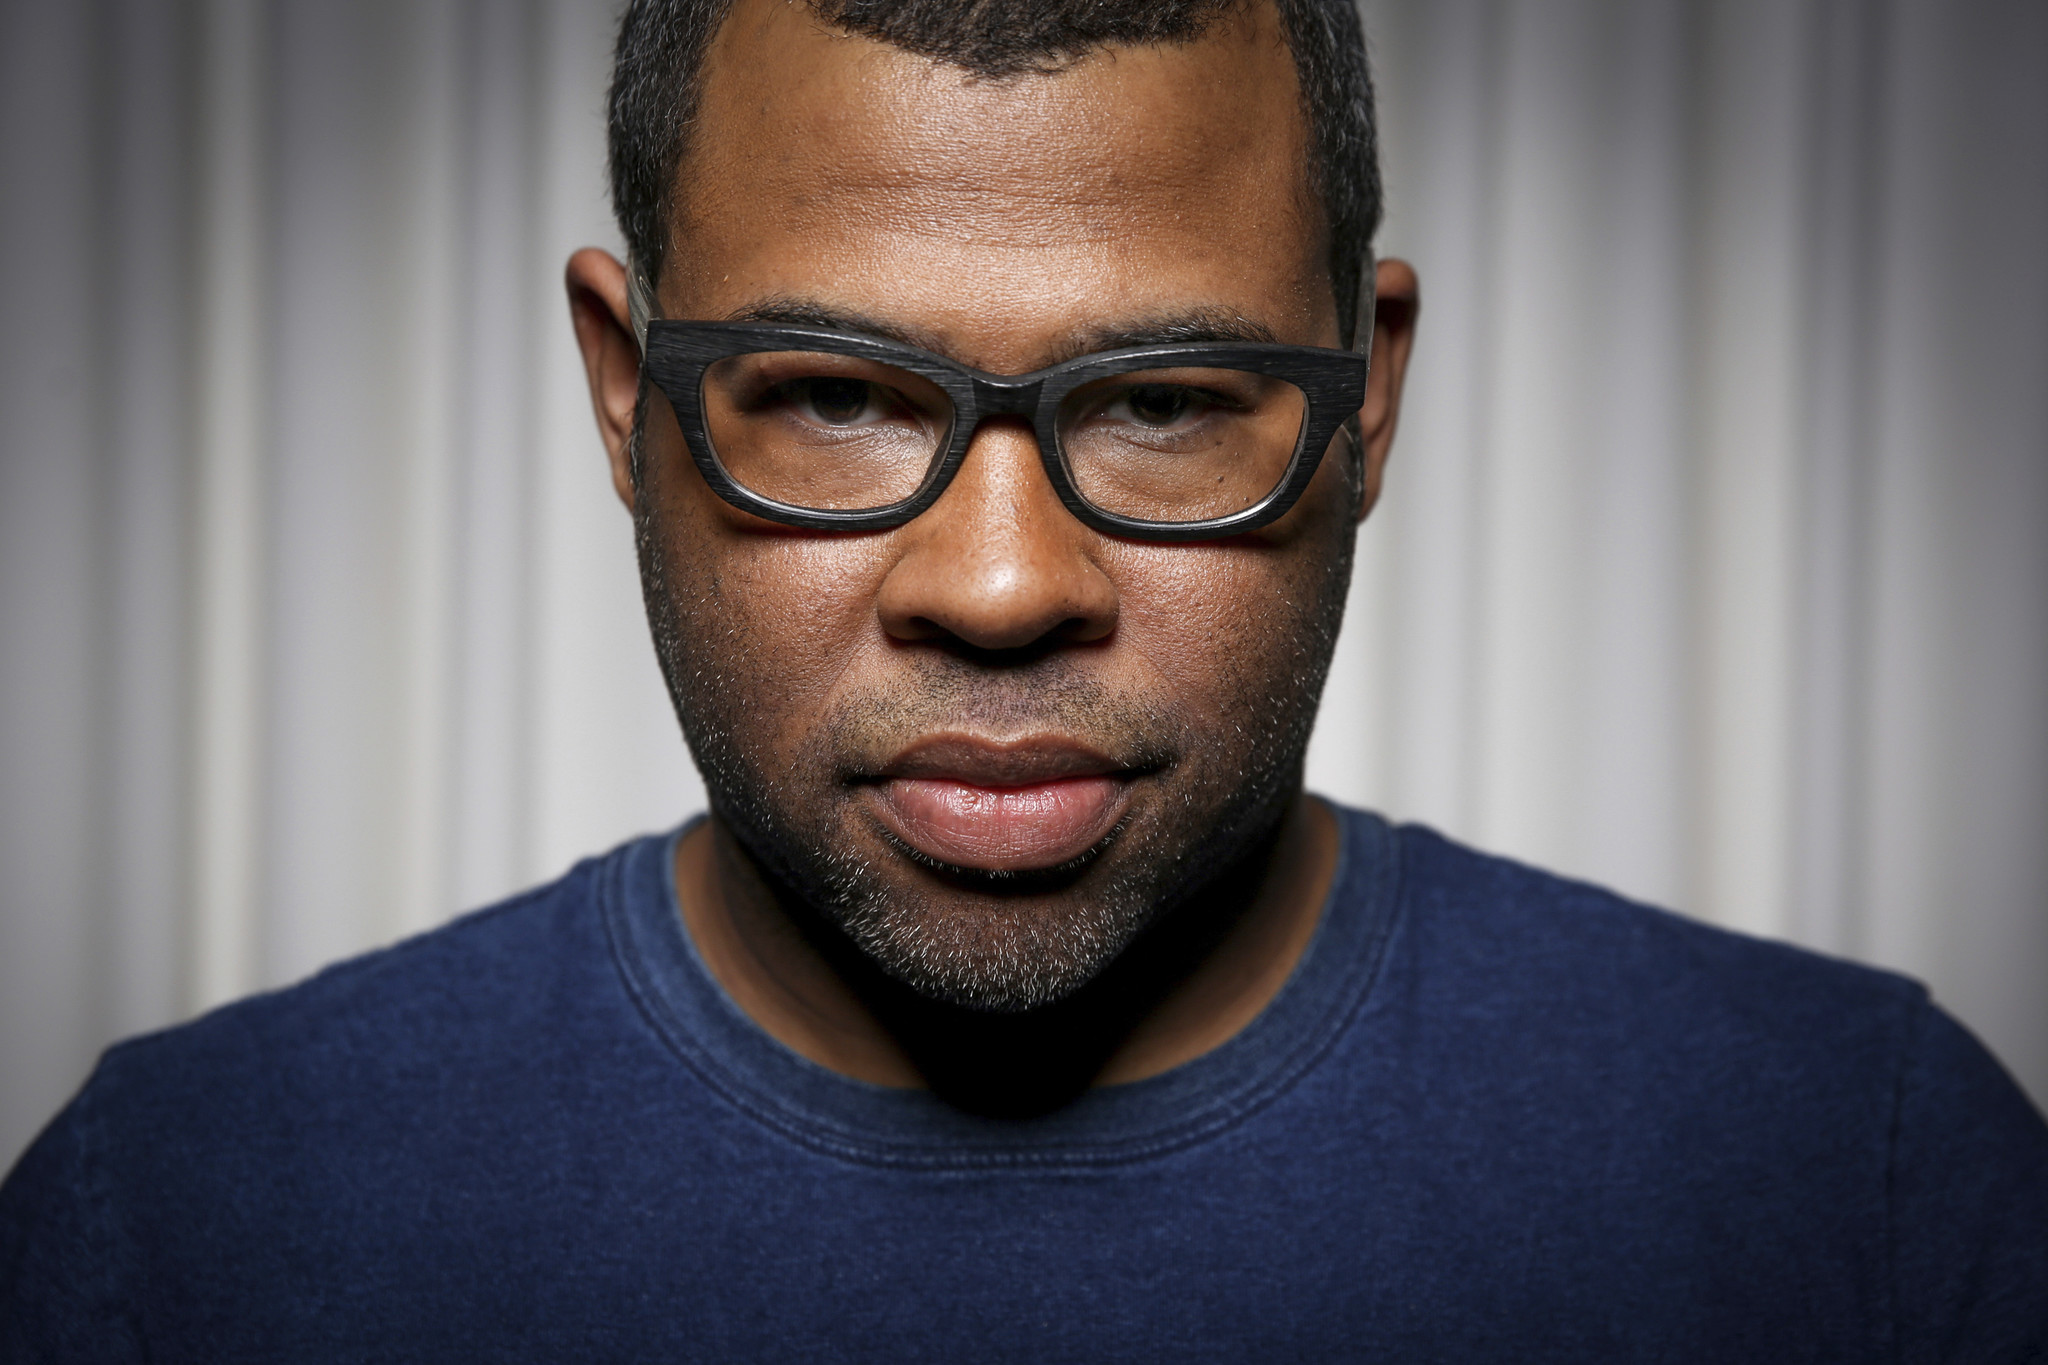 ct-jordan-peele-get-out-interview-20170224.jpg